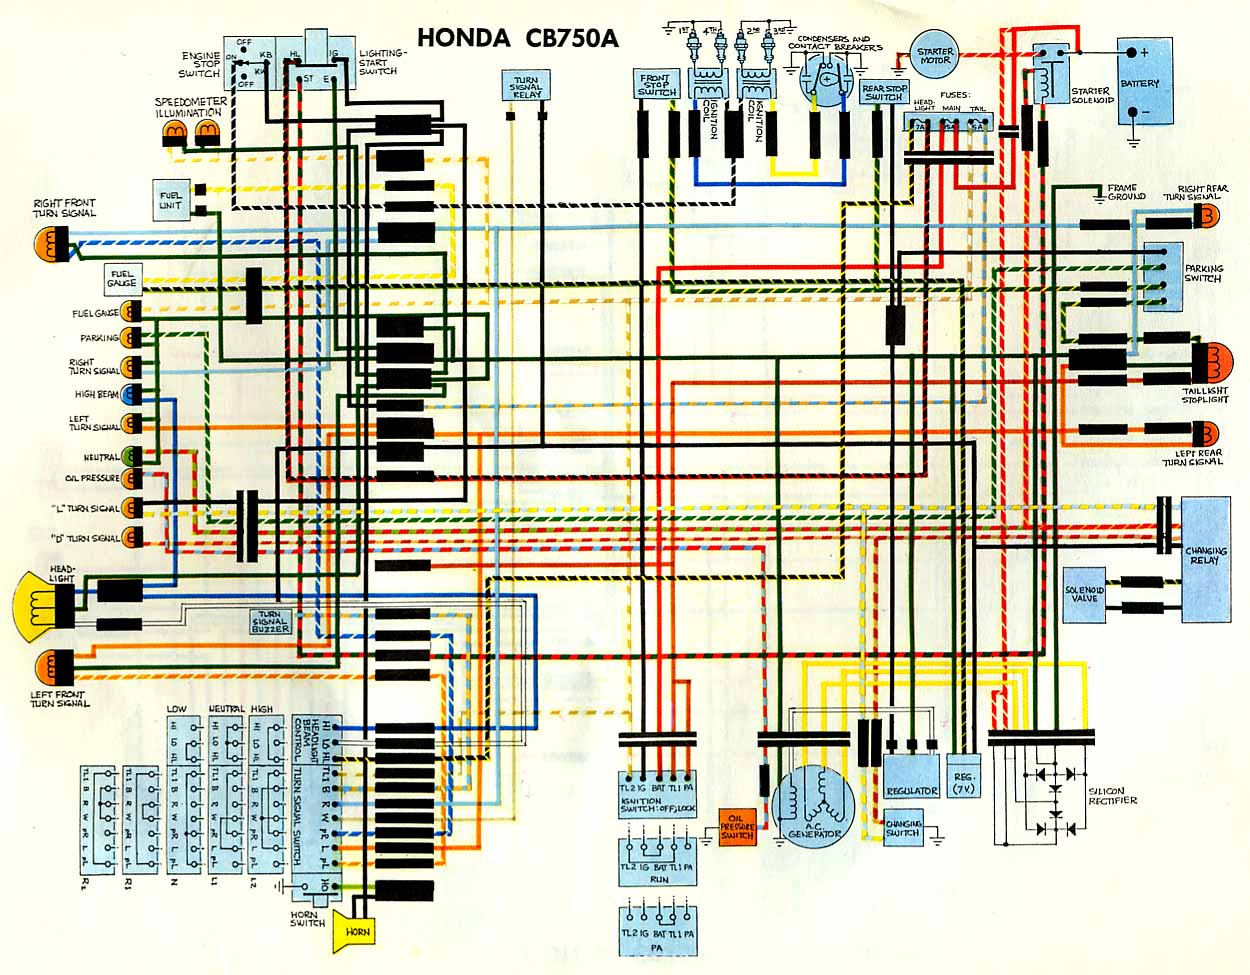 Honda Wiring Diagram Electrical Schematics 1977 Z50 Diagrams 95 Civic Cb750 Automatic